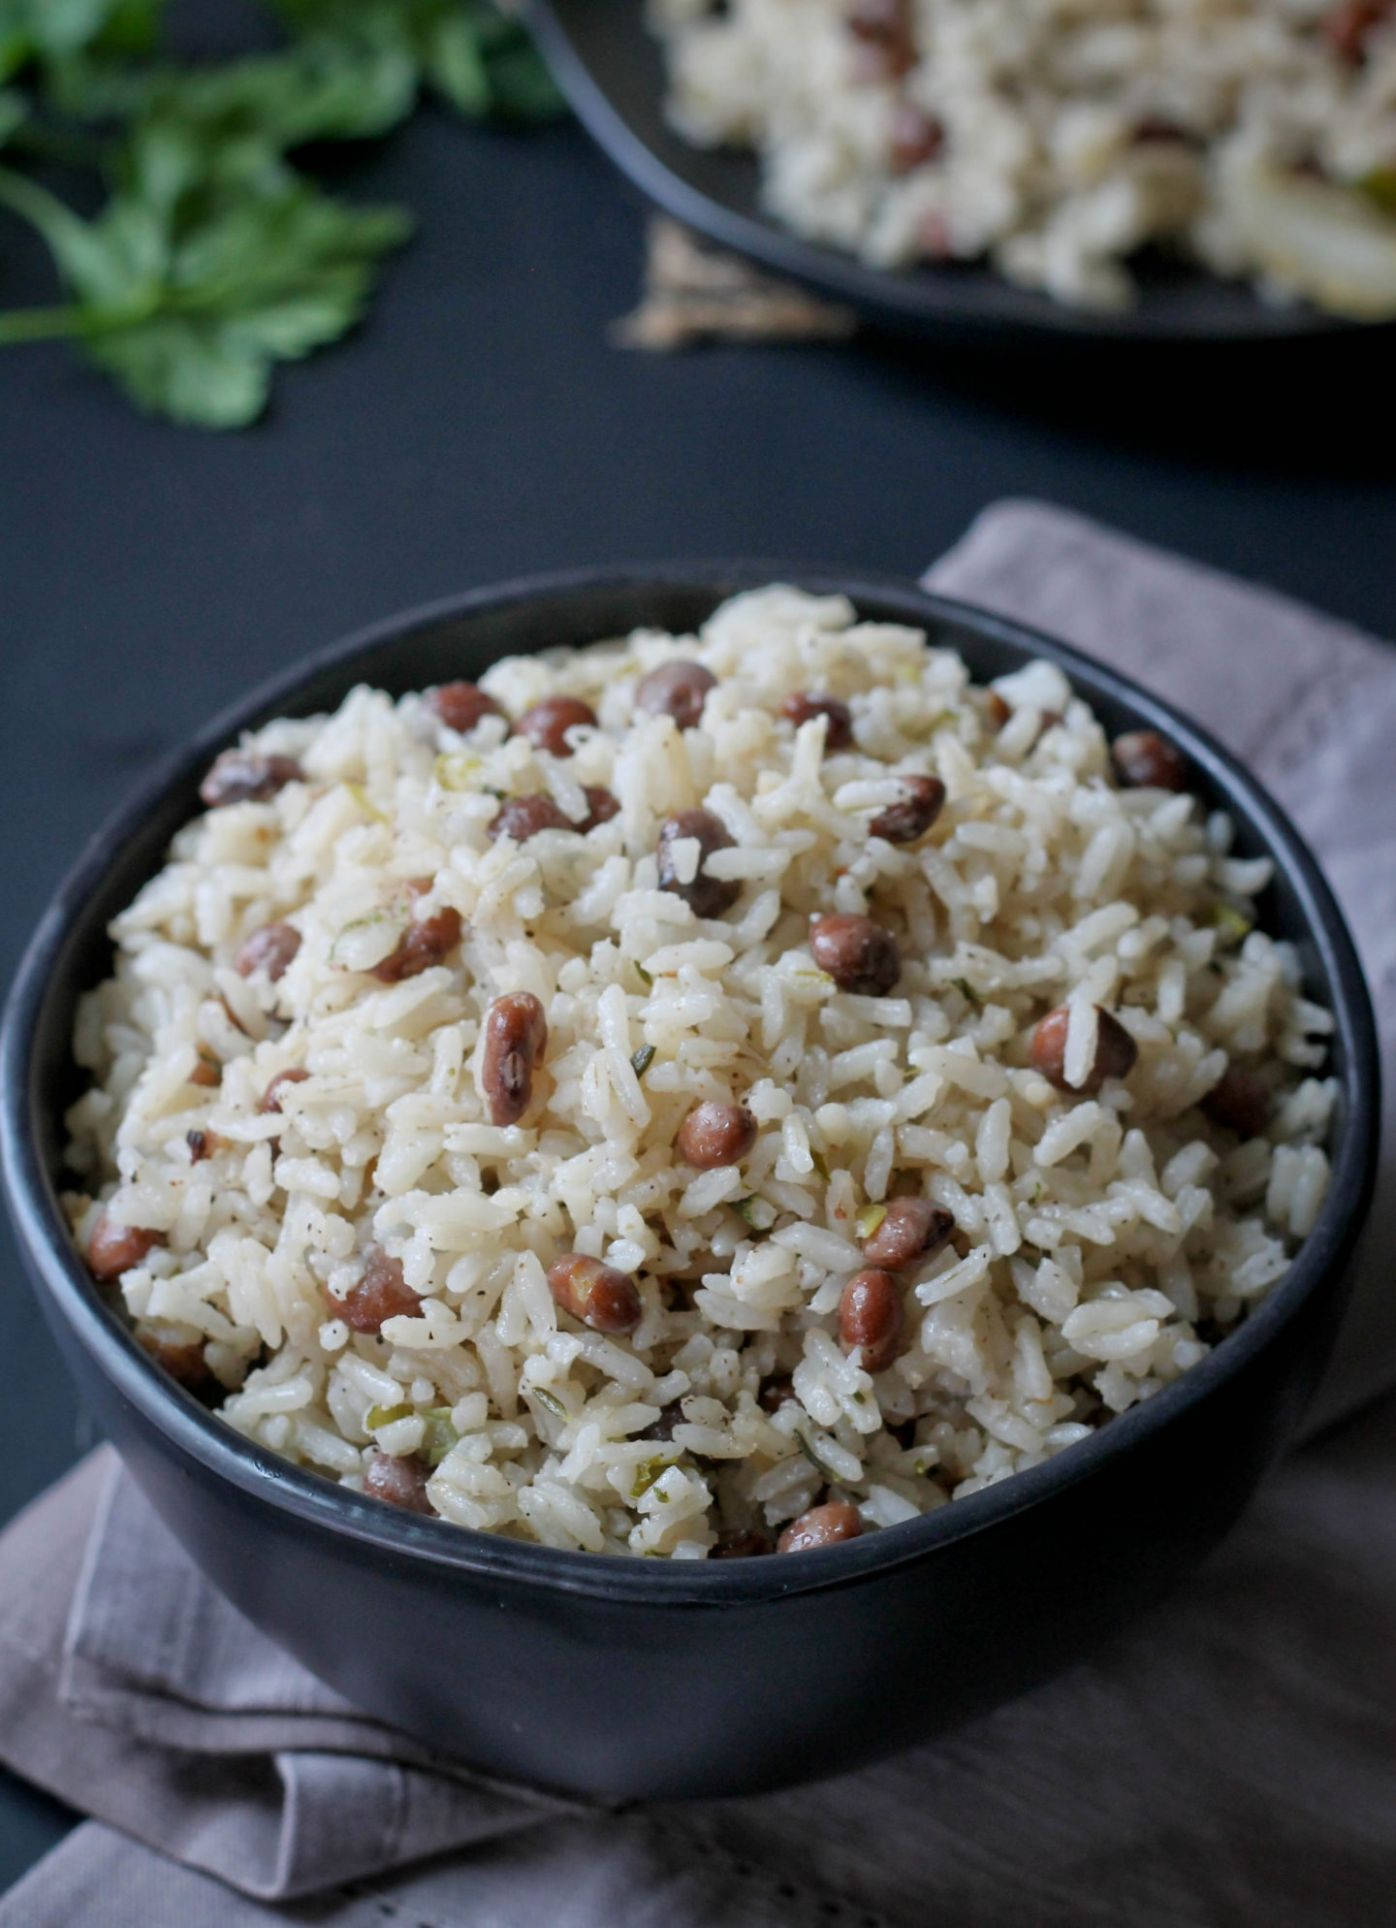 CARIBBEAN PIGEON PEAS AND RICE